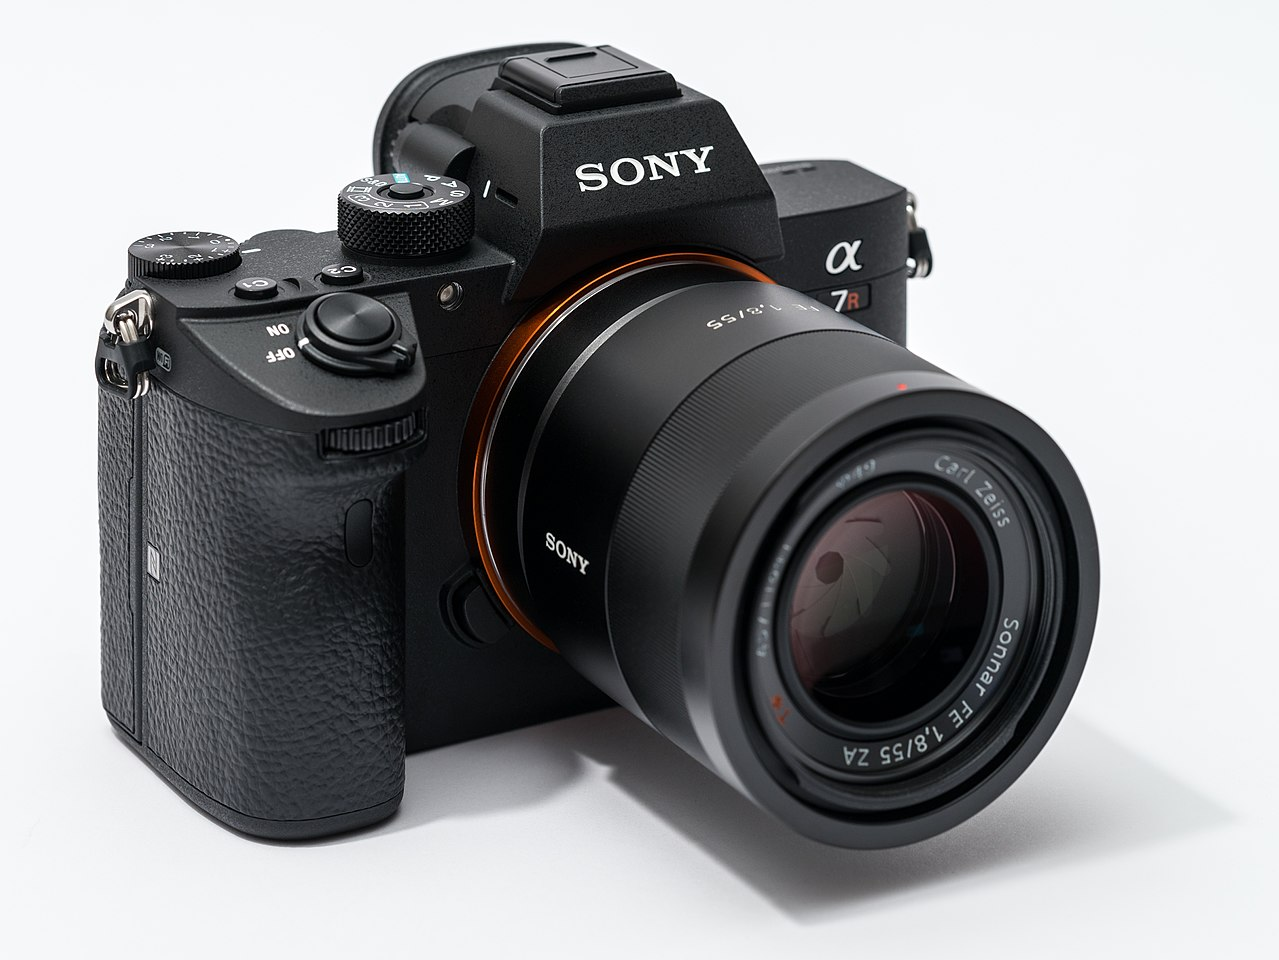 Datei:Sony Alpha ILCE-7RM3 full frame camera with lens.jpeg – Wikipedia